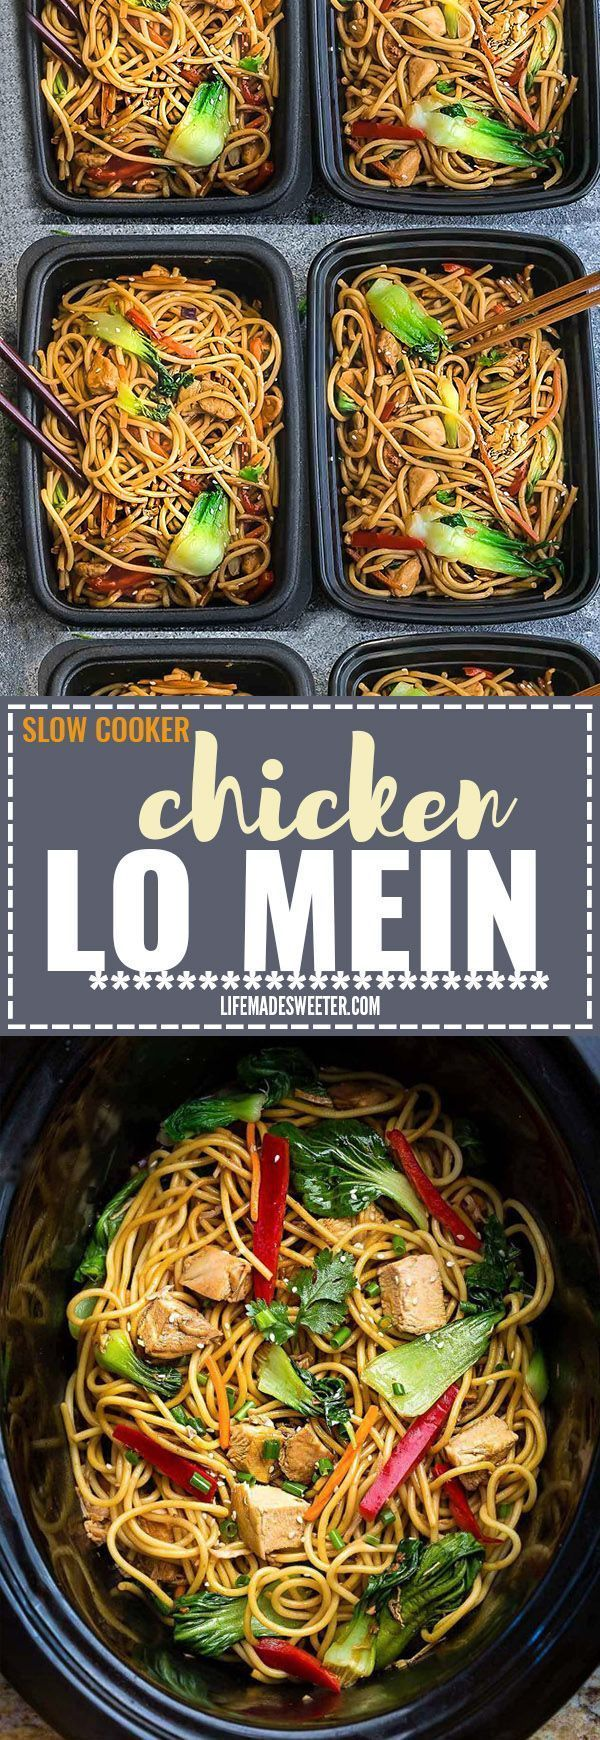 Crock pot Slow Cooker Chicken Lo Mein makes the perfect easy Asian-inspired weeknight meal and perfect for your weekly meal prep as lunch bowls for work or school. Best of all, takes only 15 minutes to put together with the most authentic flavors! So deli